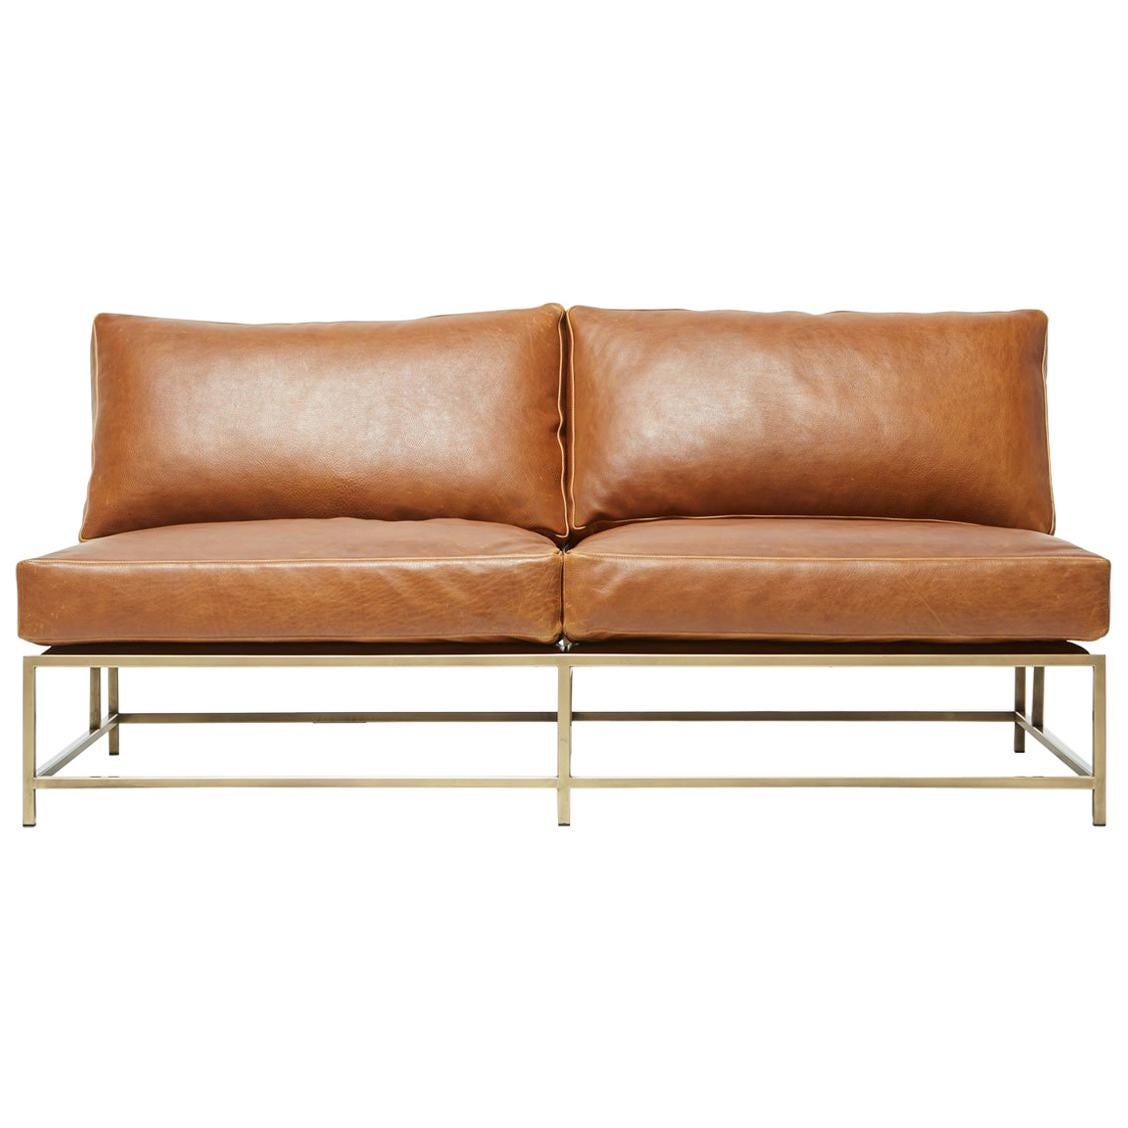 Potomac Tan Leather and Antique Brass Loveseat